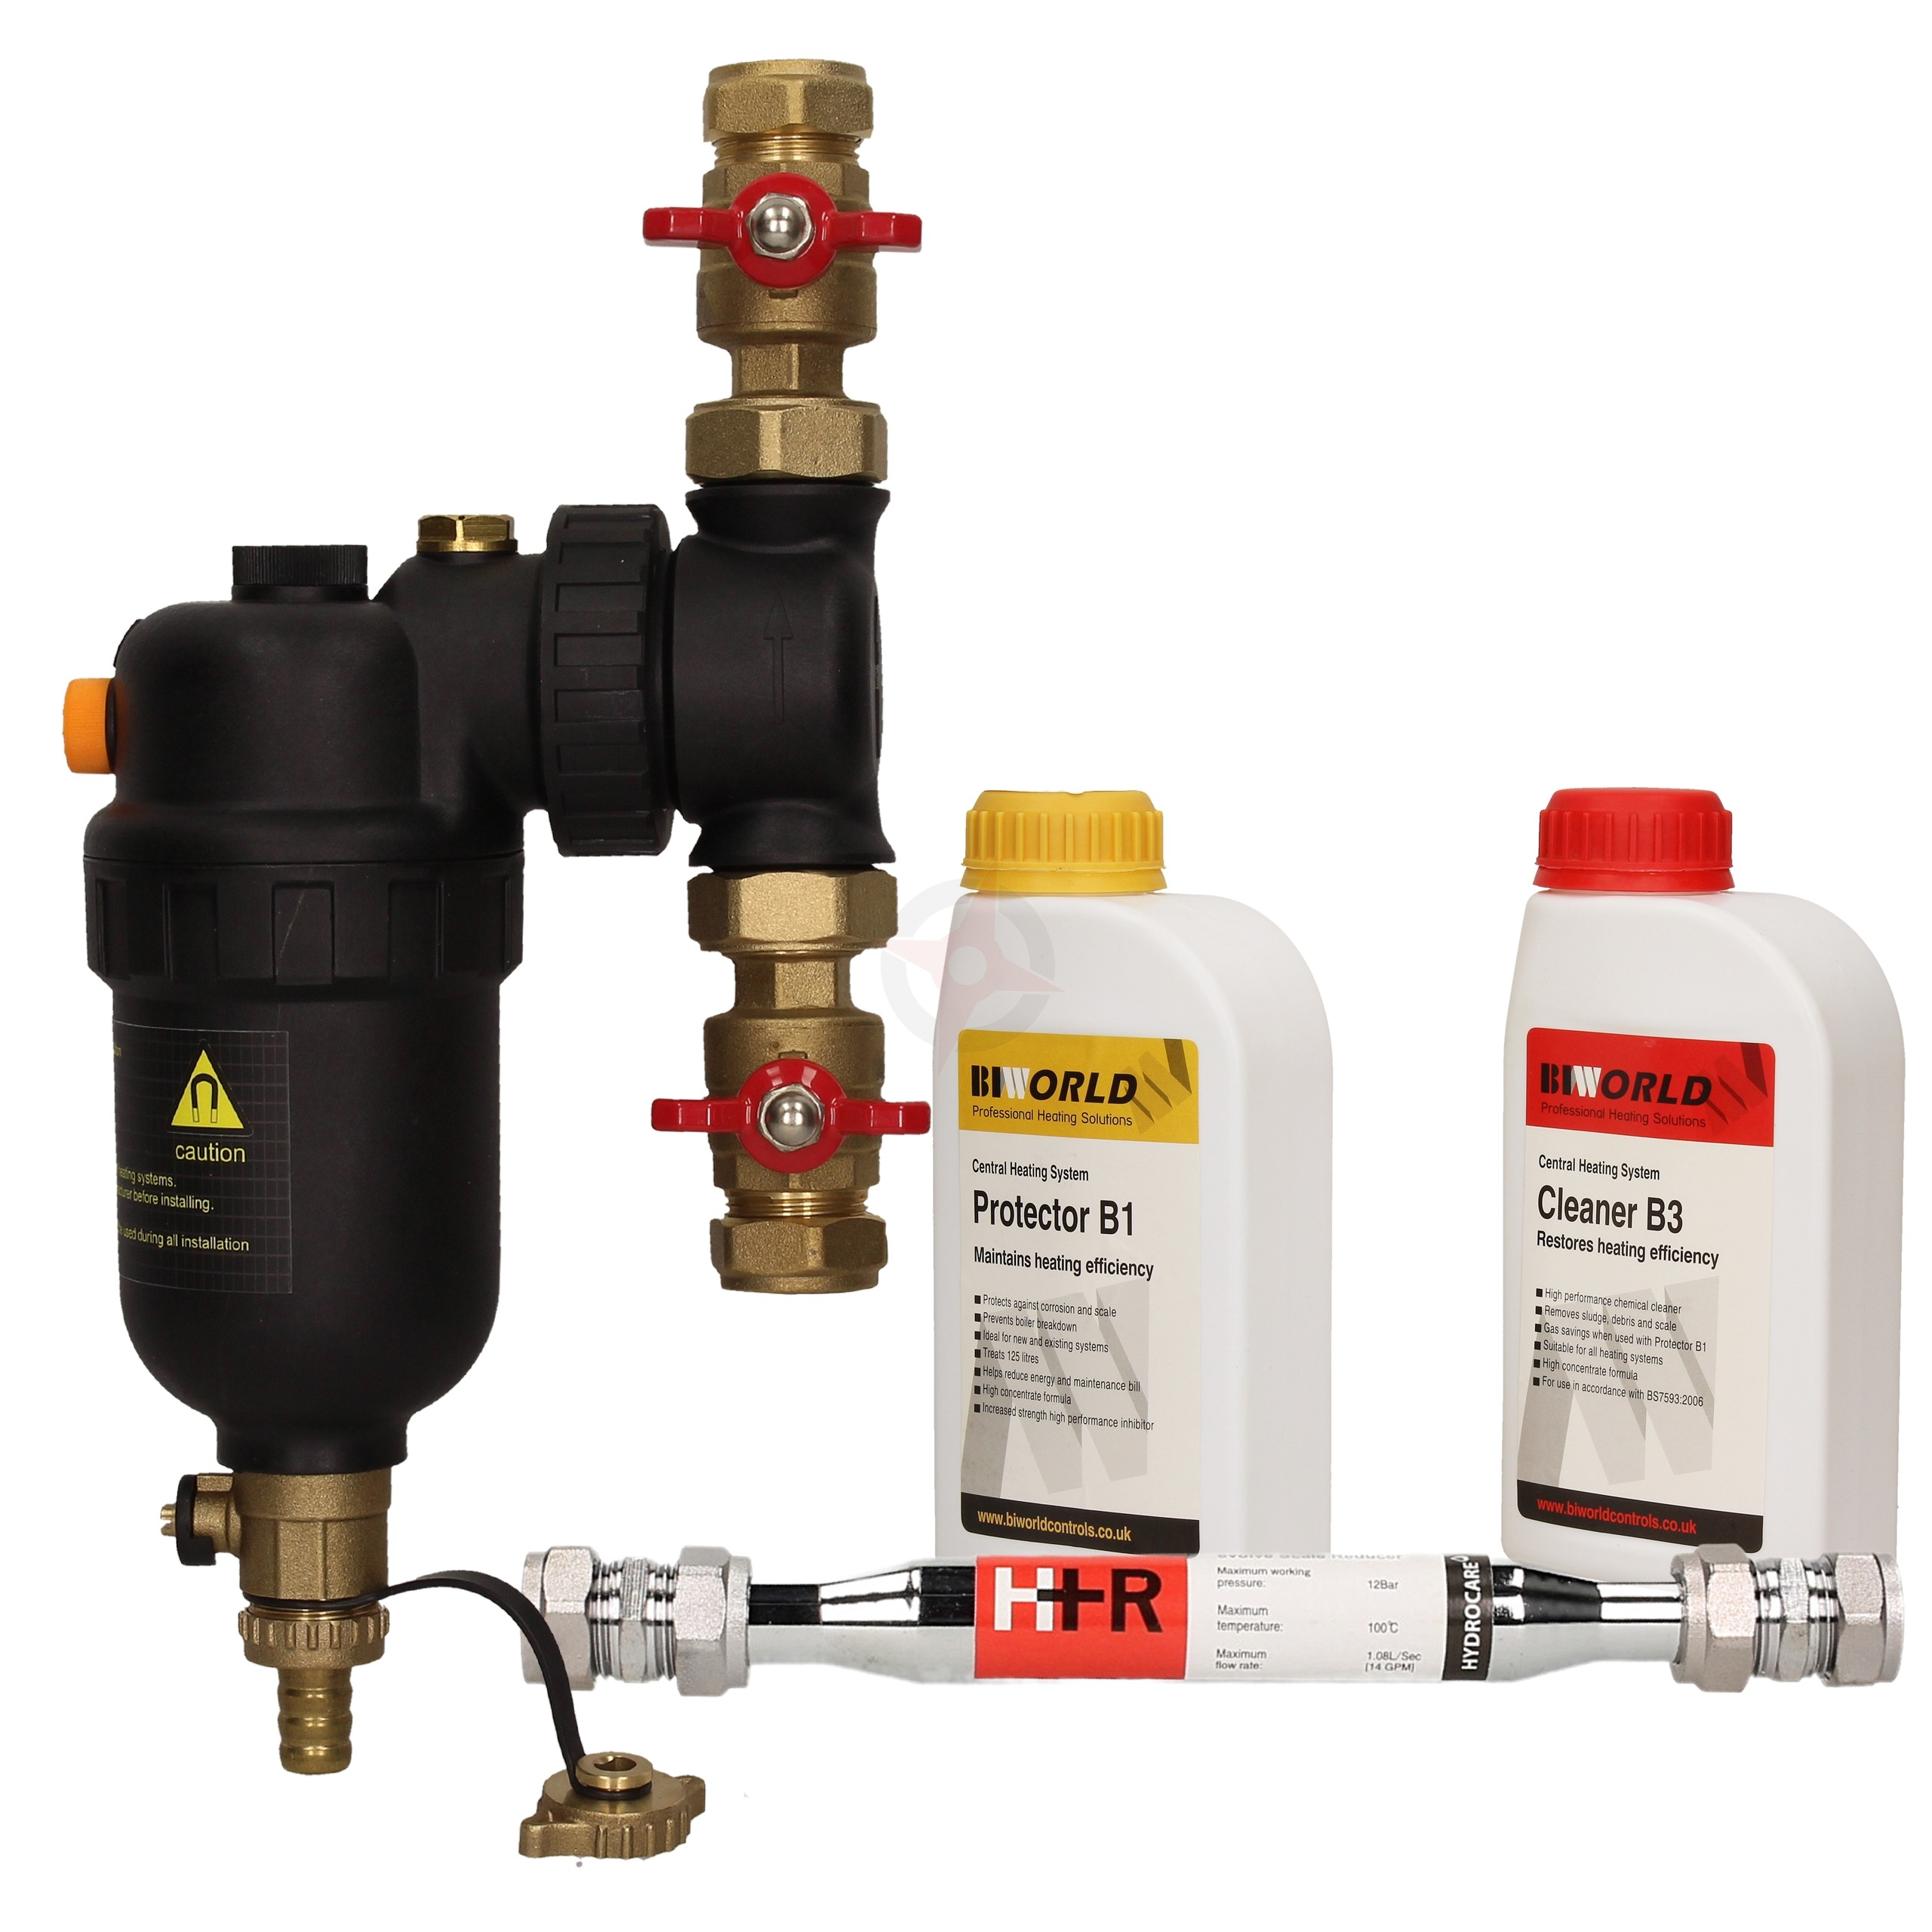 Boiler Protection Pack (BIW 1)